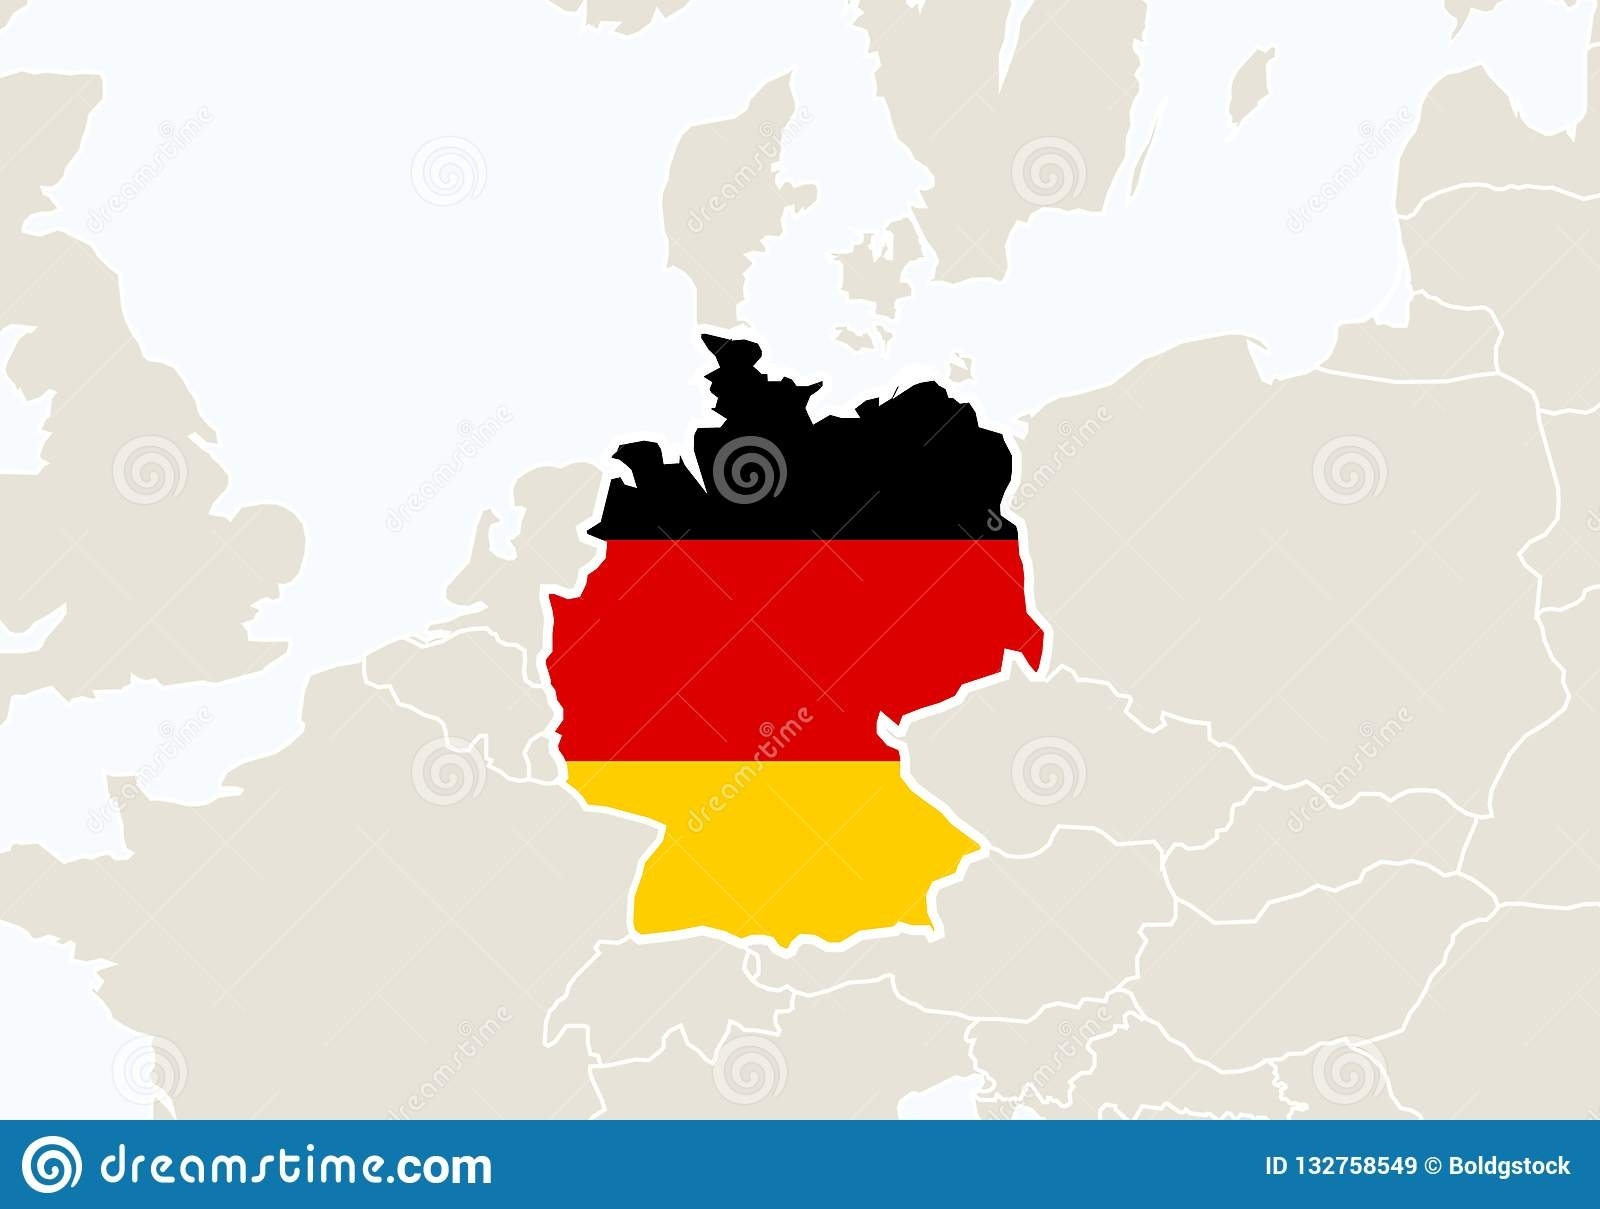 Europe With Highlighted Germany Map Stock Vector - Illustration Of pertaining to Europe Map With Germany Highlighted